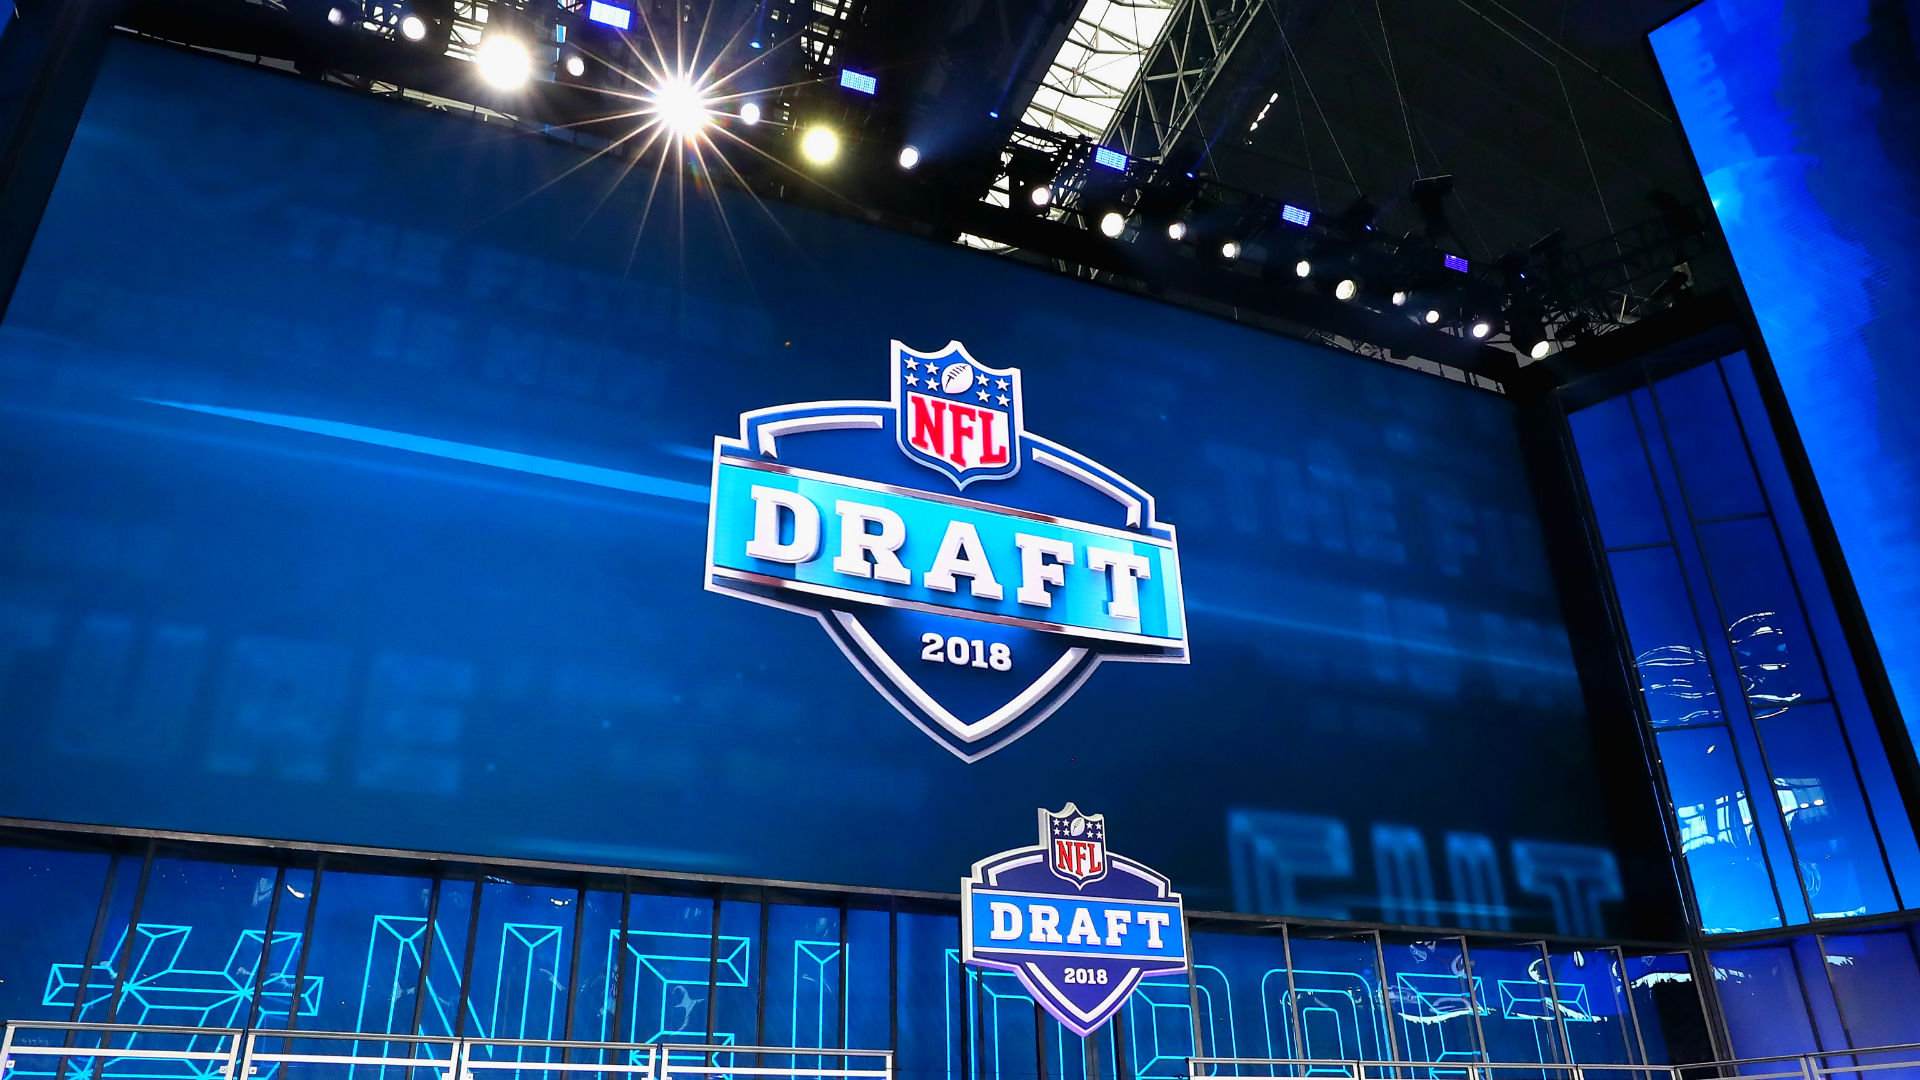 NFL Draft 2019: Dates, start time, pick order, TV channels and live stream